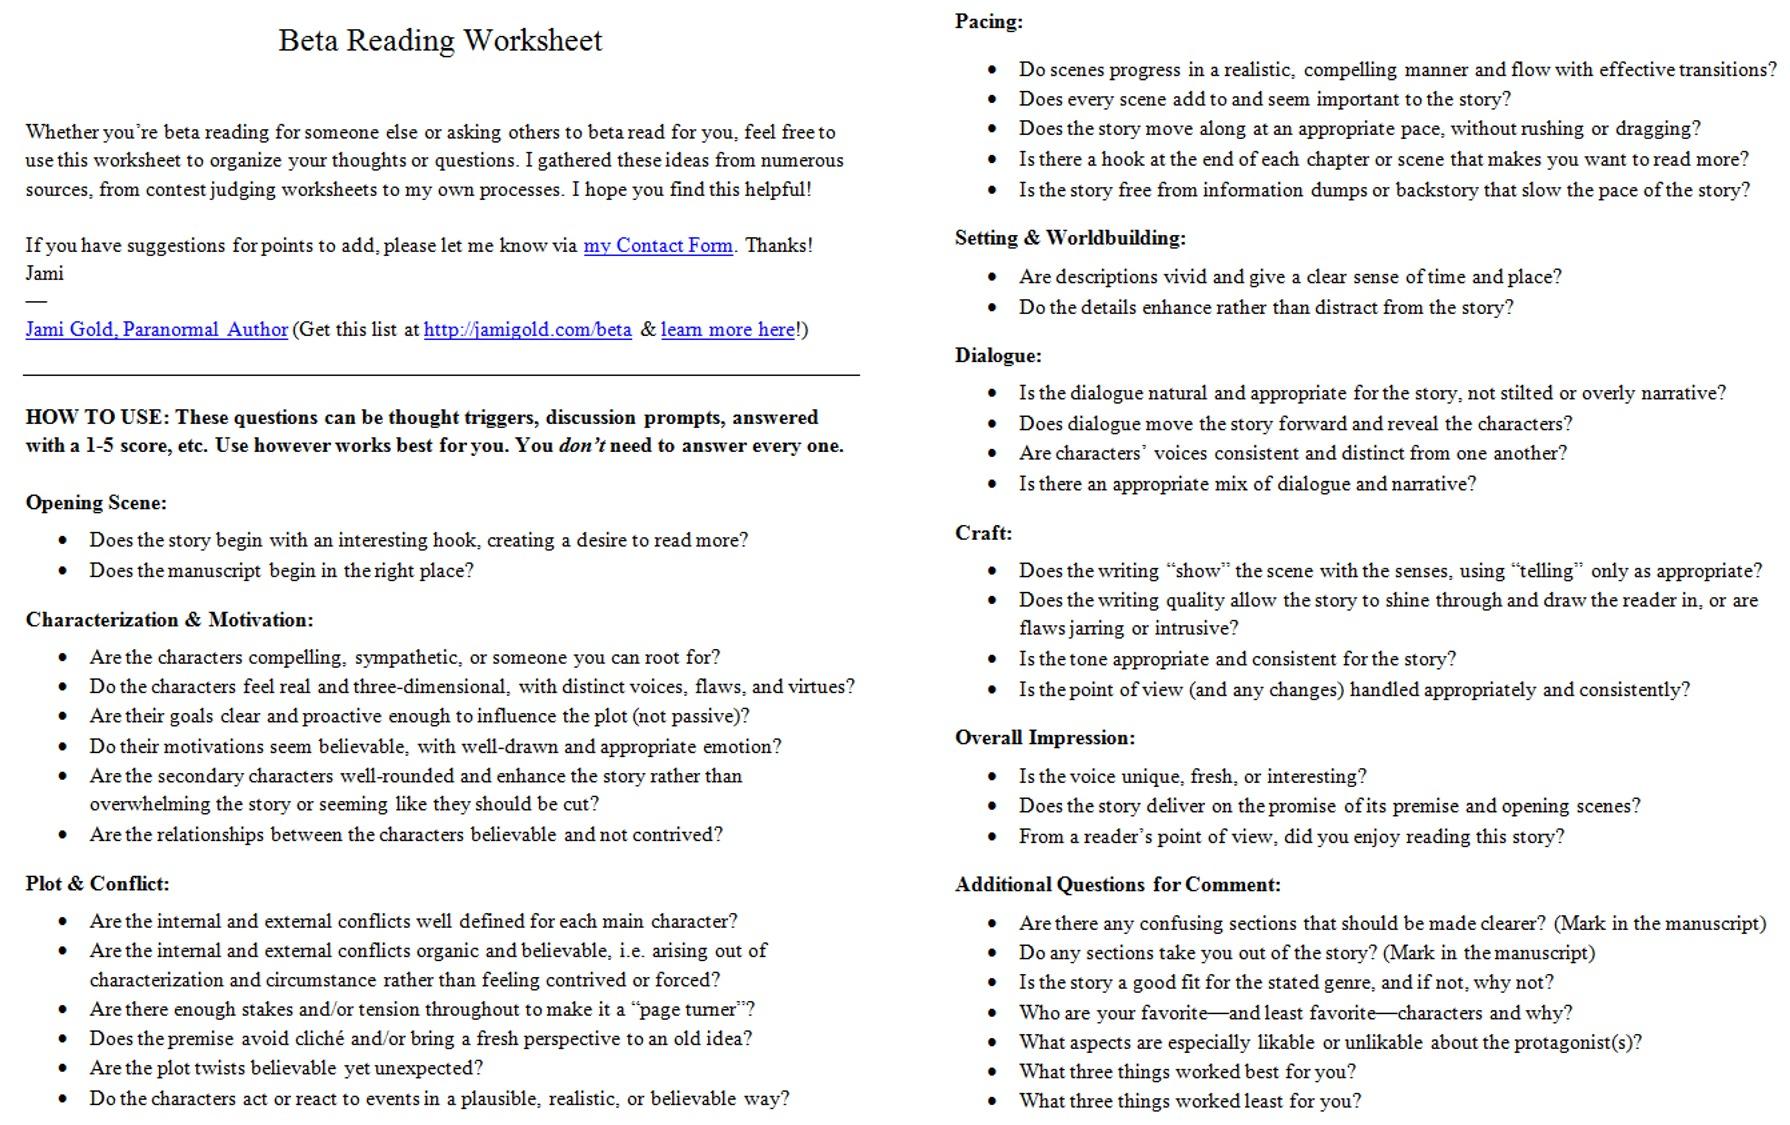 Aldiablosus  Gorgeous Worksheets For Writers  Jami Gold Paranormal Author With Remarkable Screen Shot Of The Twopage Beta Reading Worksheet With Endearing Kindergarten Words Worksheets Also Life Cycle Of A Plant For Kids Worksheet In Addition Teach Reading Worksheets And Printable Times Table Worksheet As Well As Chemistry Balance Equations Worksheet Additionally Fractions Pdf Worksheets From Jamigoldcom With Aldiablosus  Remarkable Worksheets For Writers  Jami Gold Paranormal Author With Endearing Screen Shot Of The Twopage Beta Reading Worksheet And Gorgeous Kindergarten Words Worksheets Also Life Cycle Of A Plant For Kids Worksheet In Addition Teach Reading Worksheets From Jamigoldcom